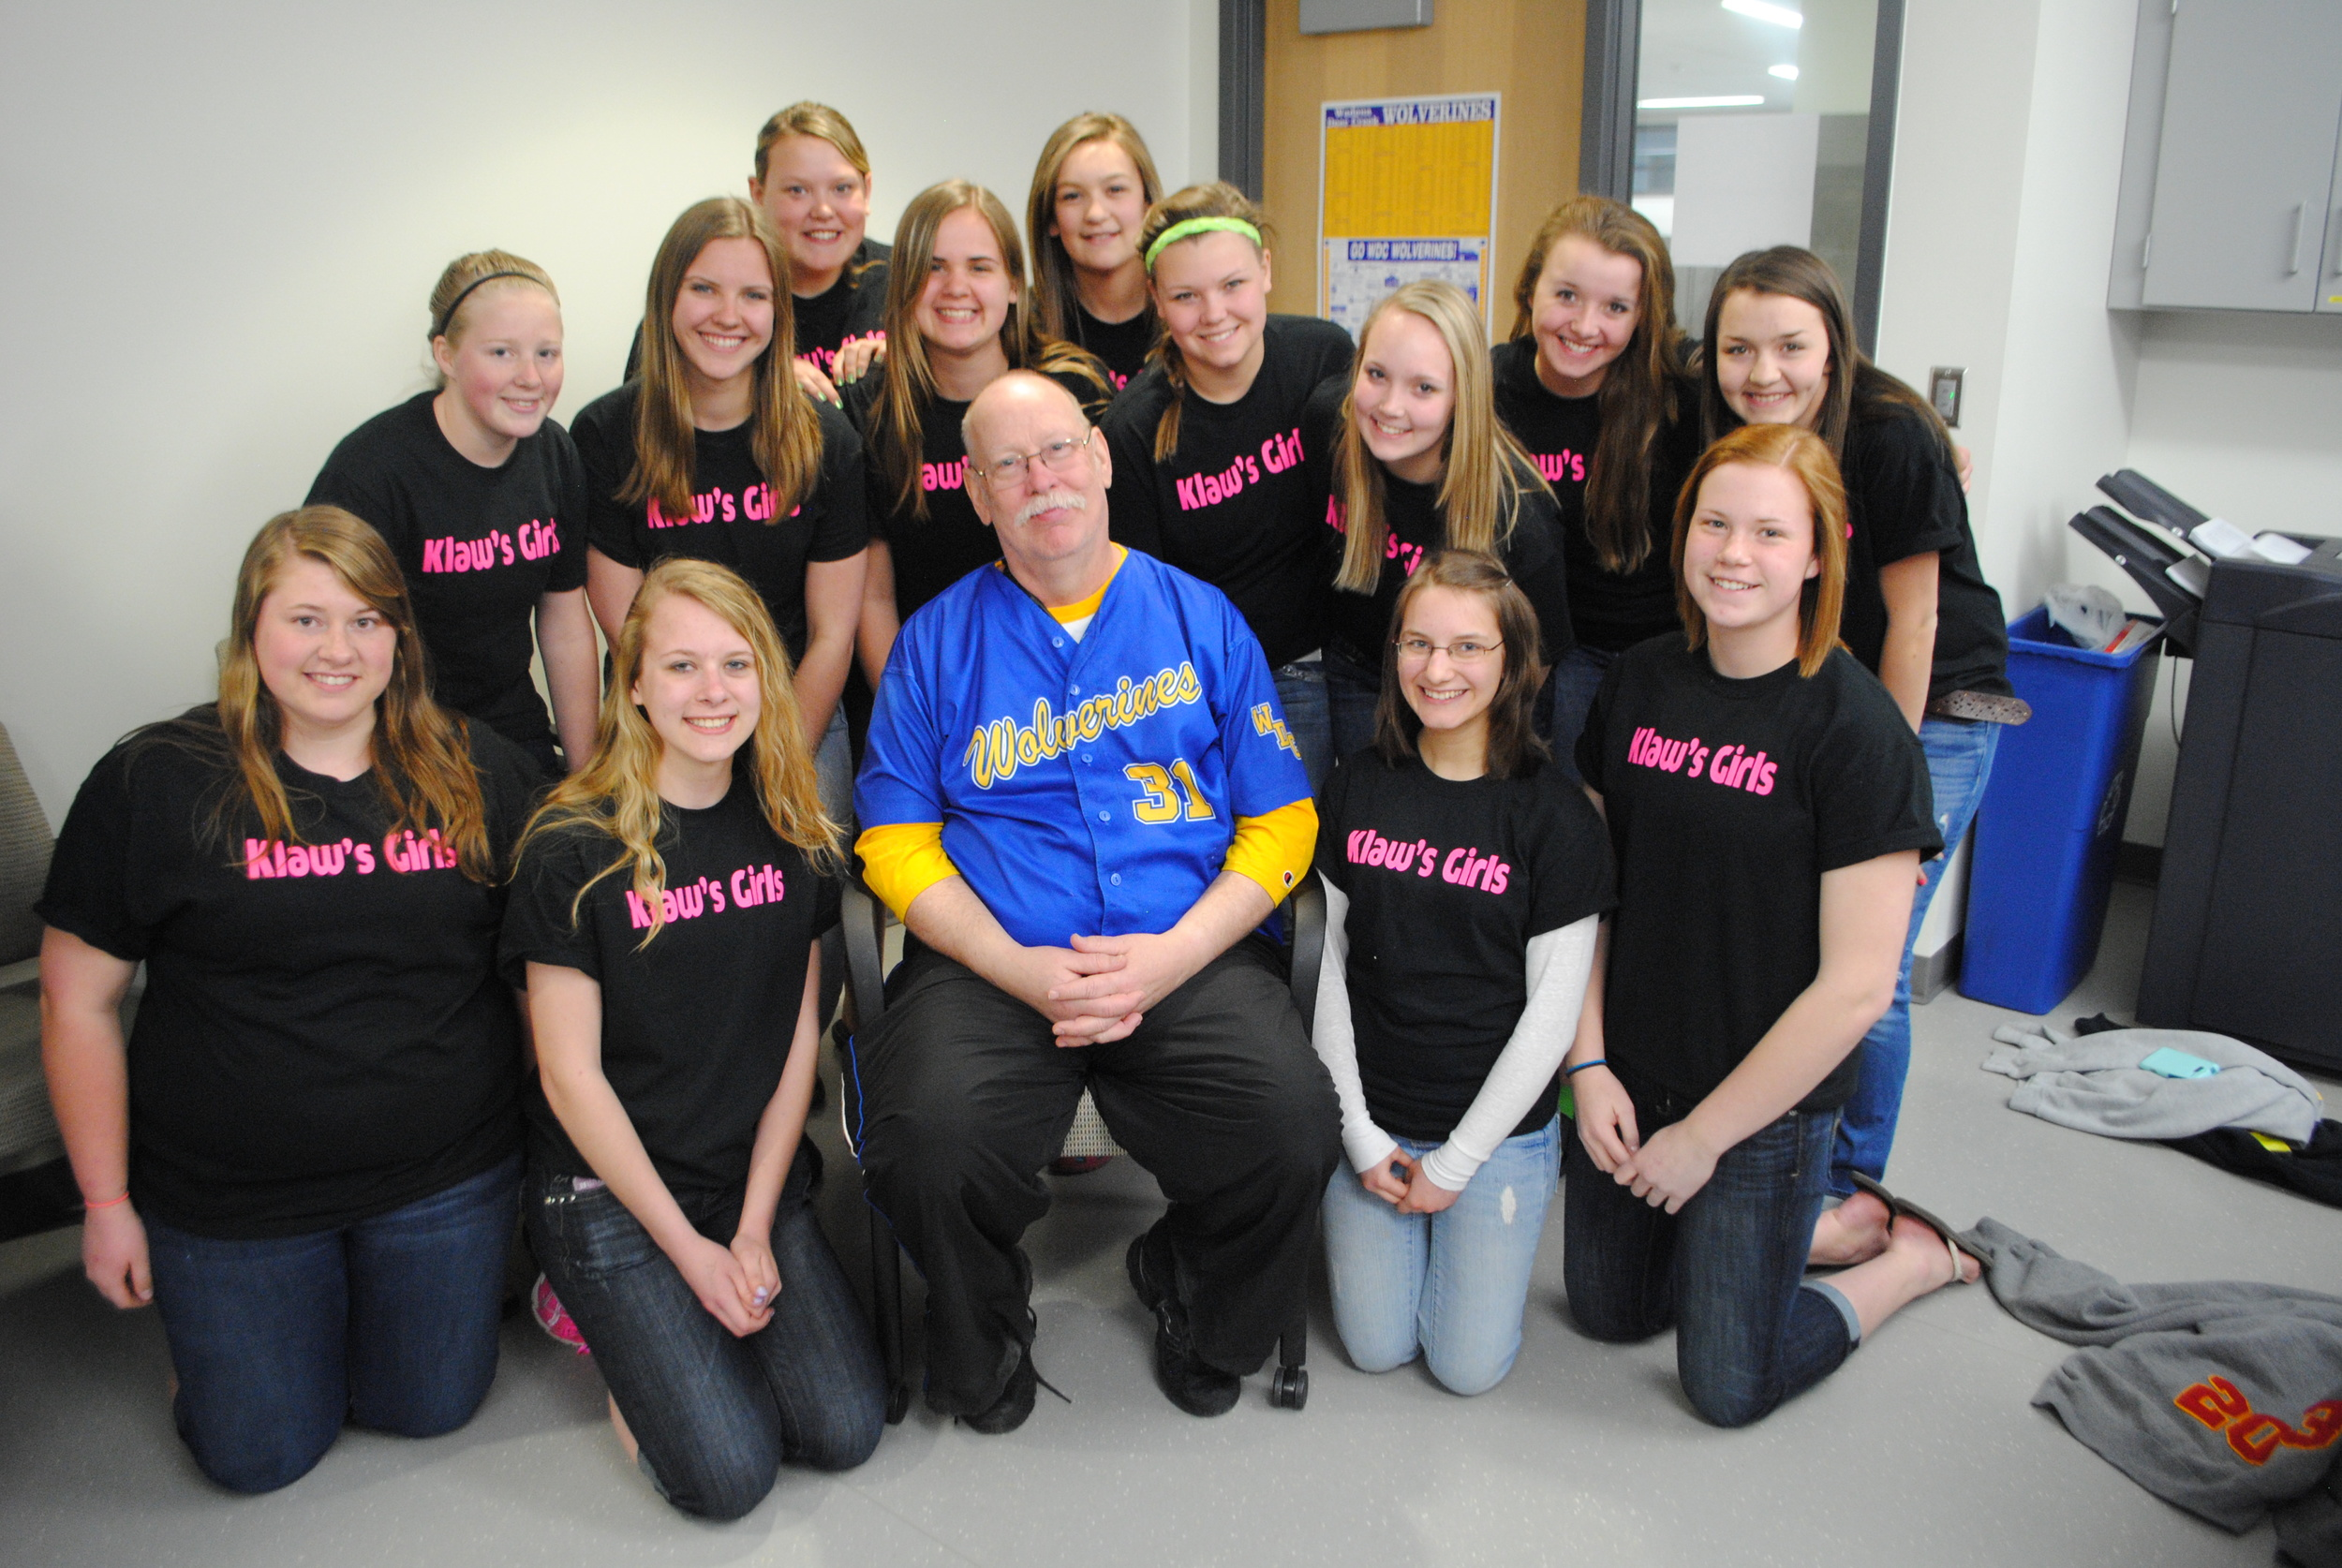 "The WDC softball varsity and JV teams had T-shirts made for game days that read, ""Klaw's Girls"" in honor of their beloved coach. Pictured with Mr. Klawitter is the JV team, from left, back row standing: Sarah Moen, Ashley Lehmkihl, Karon Johnson, Kayla Peters, Maggie Schmitz, MacKenzie Barthel, Mikena Formanek, Lauren Soroko, and Whitney Eickhoff; kneeling, from left: Kirsten Peterson, Taylor Dirks, Klawitter, Sandra Kucharczyk, and Kelsie Pierce. (Photo by Dana Pavek, WDC Schools)"